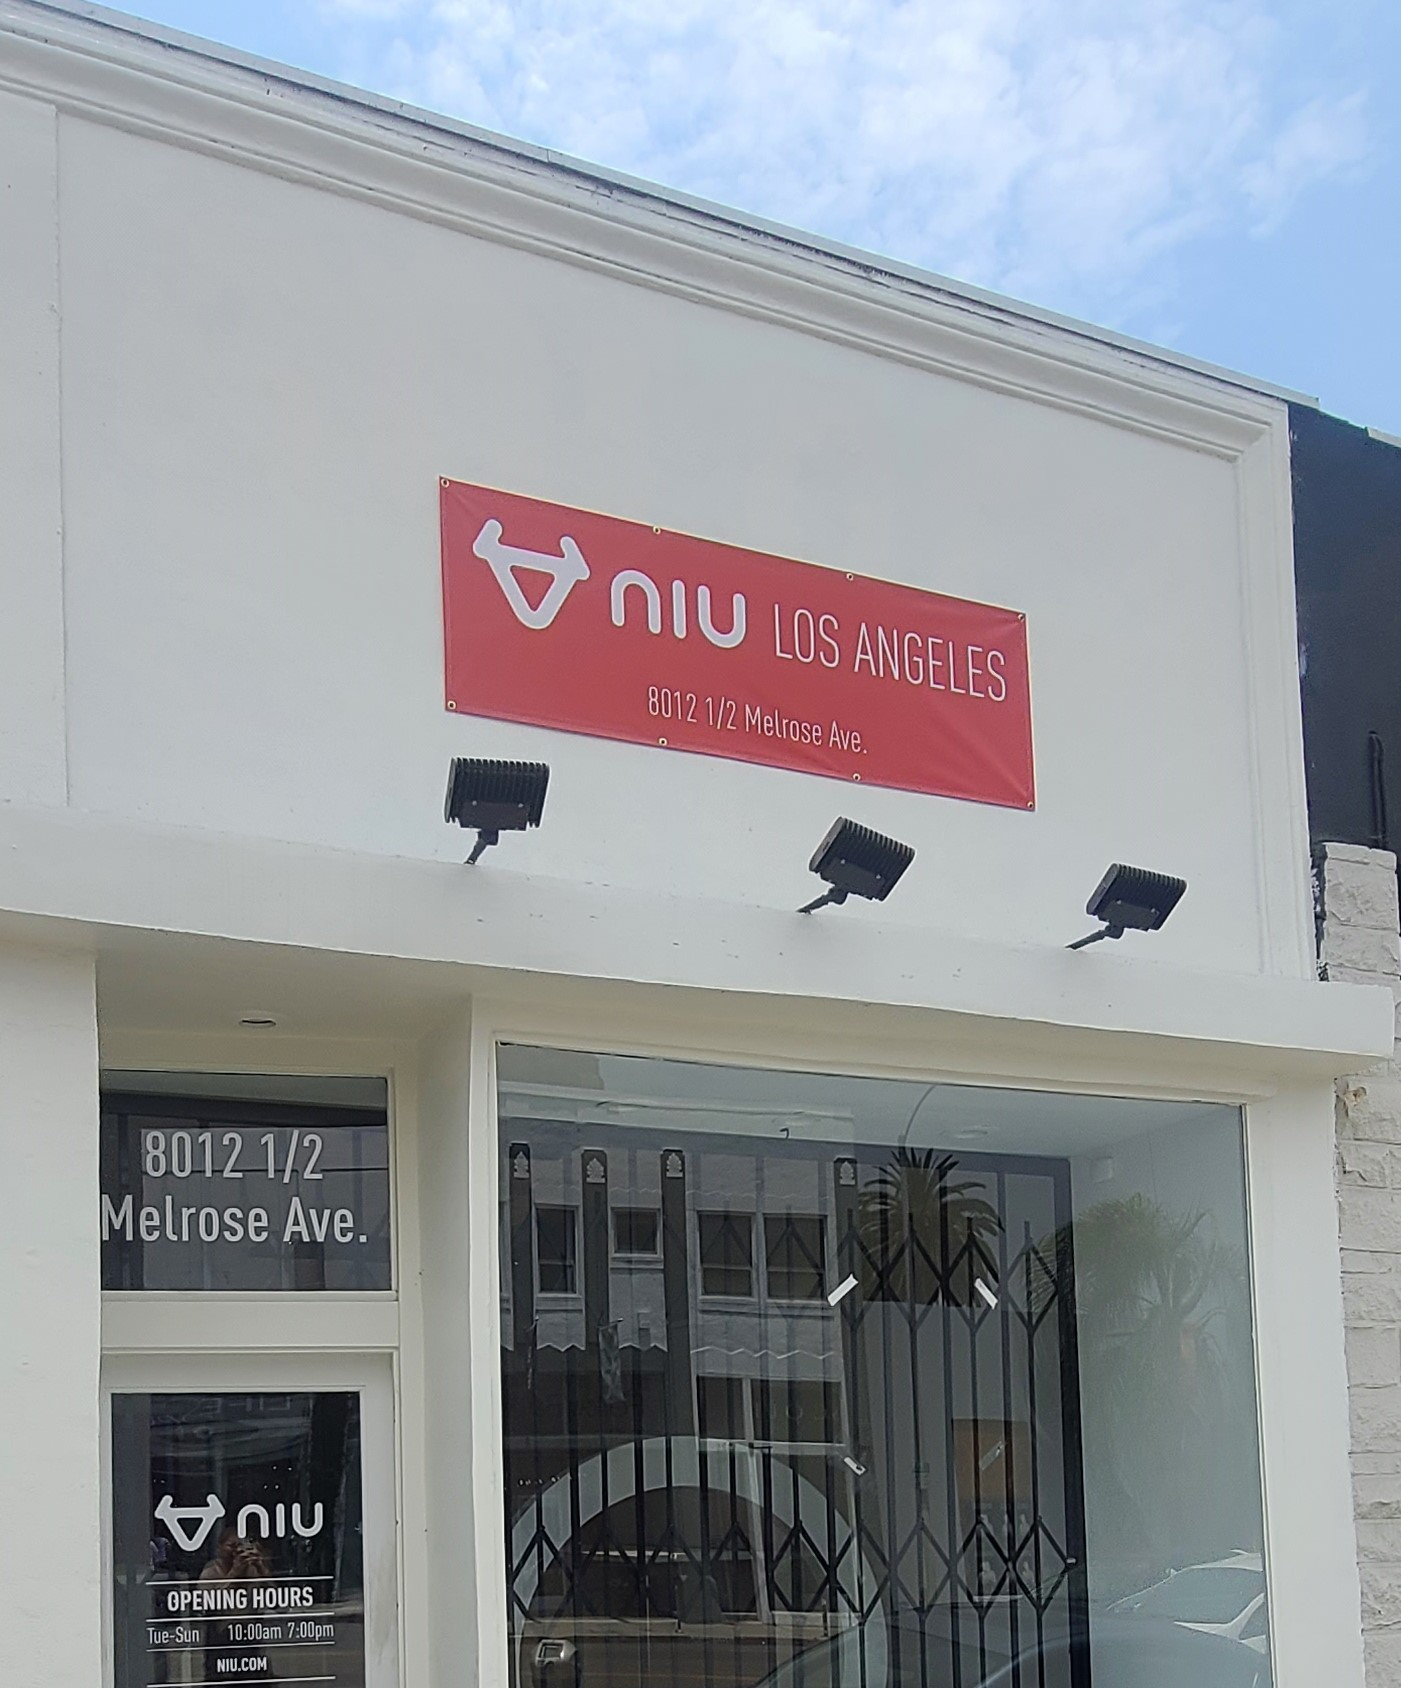 Part of a sign package, this storefront banner gives NIU's Los Angeles branch more visibility before more permanent signage is installed.